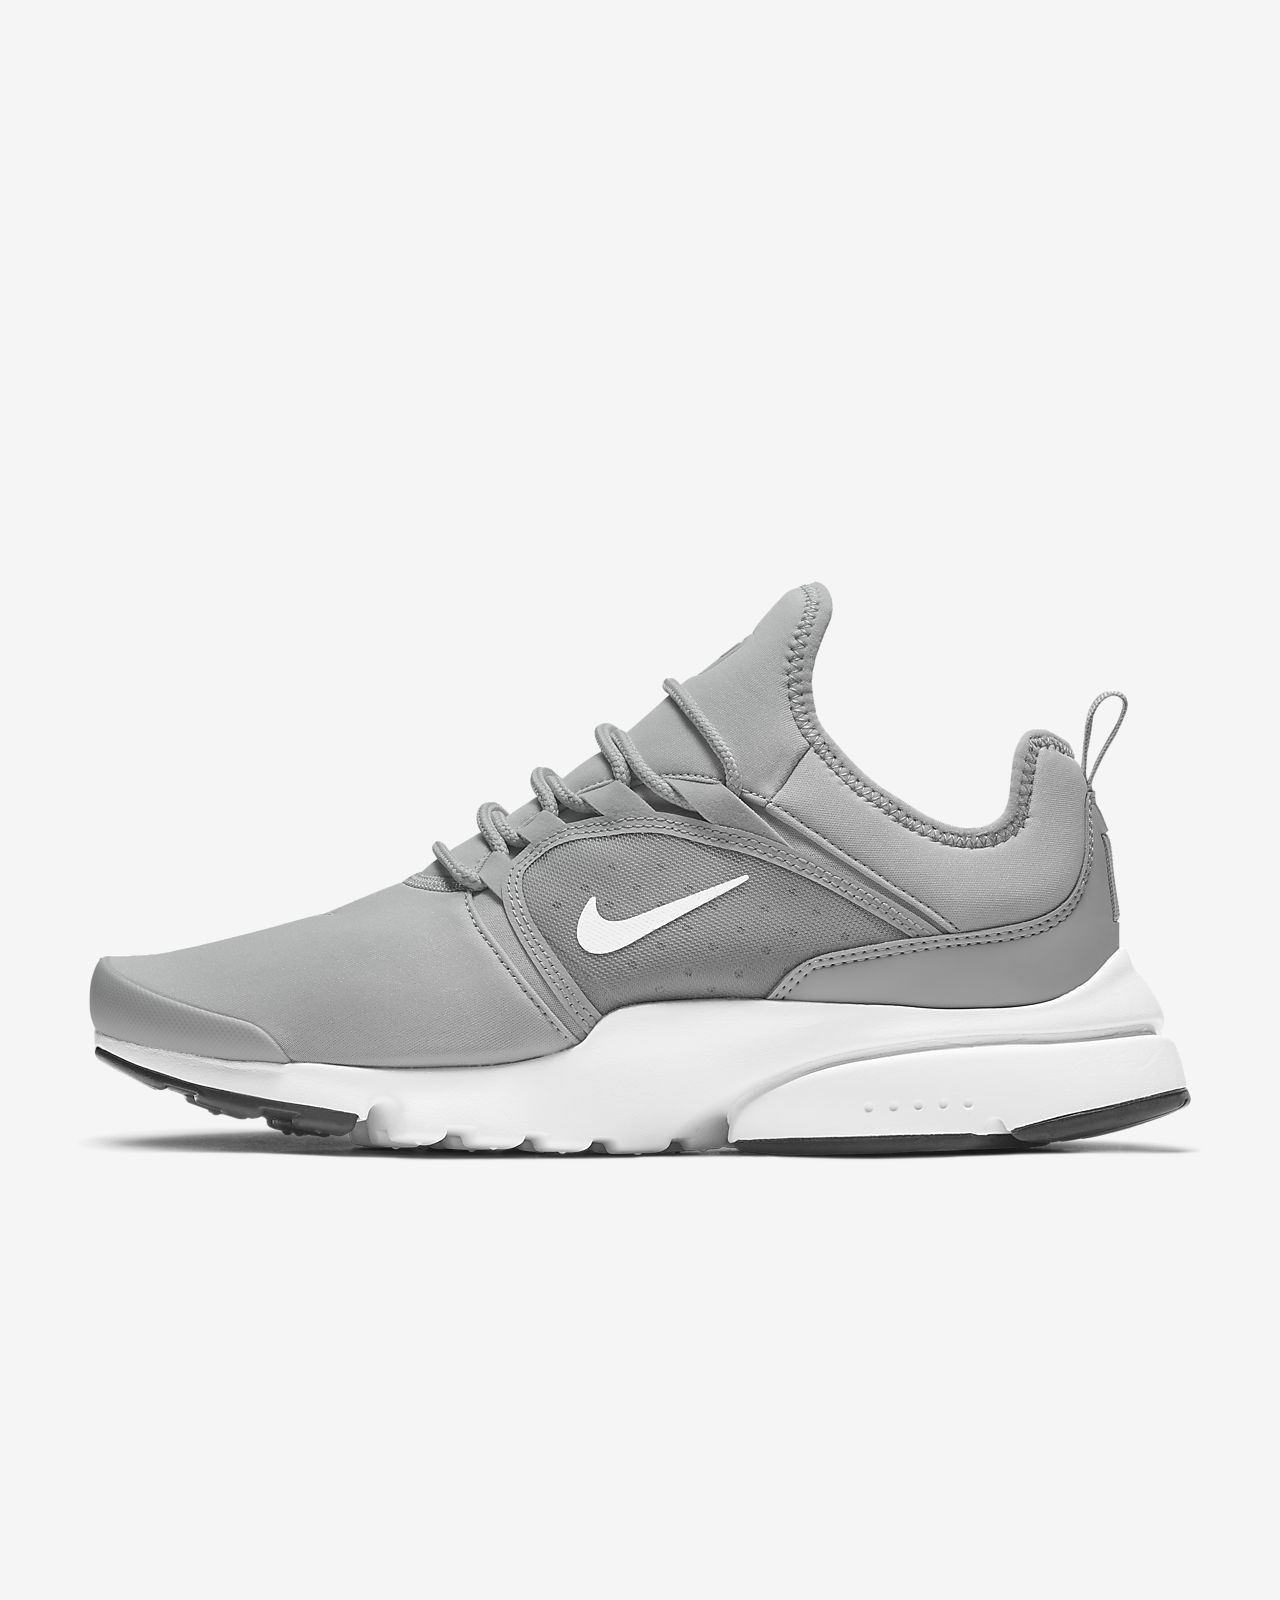 new concept e266d e9555 ... Nike Presto Fly World Men s Shoe